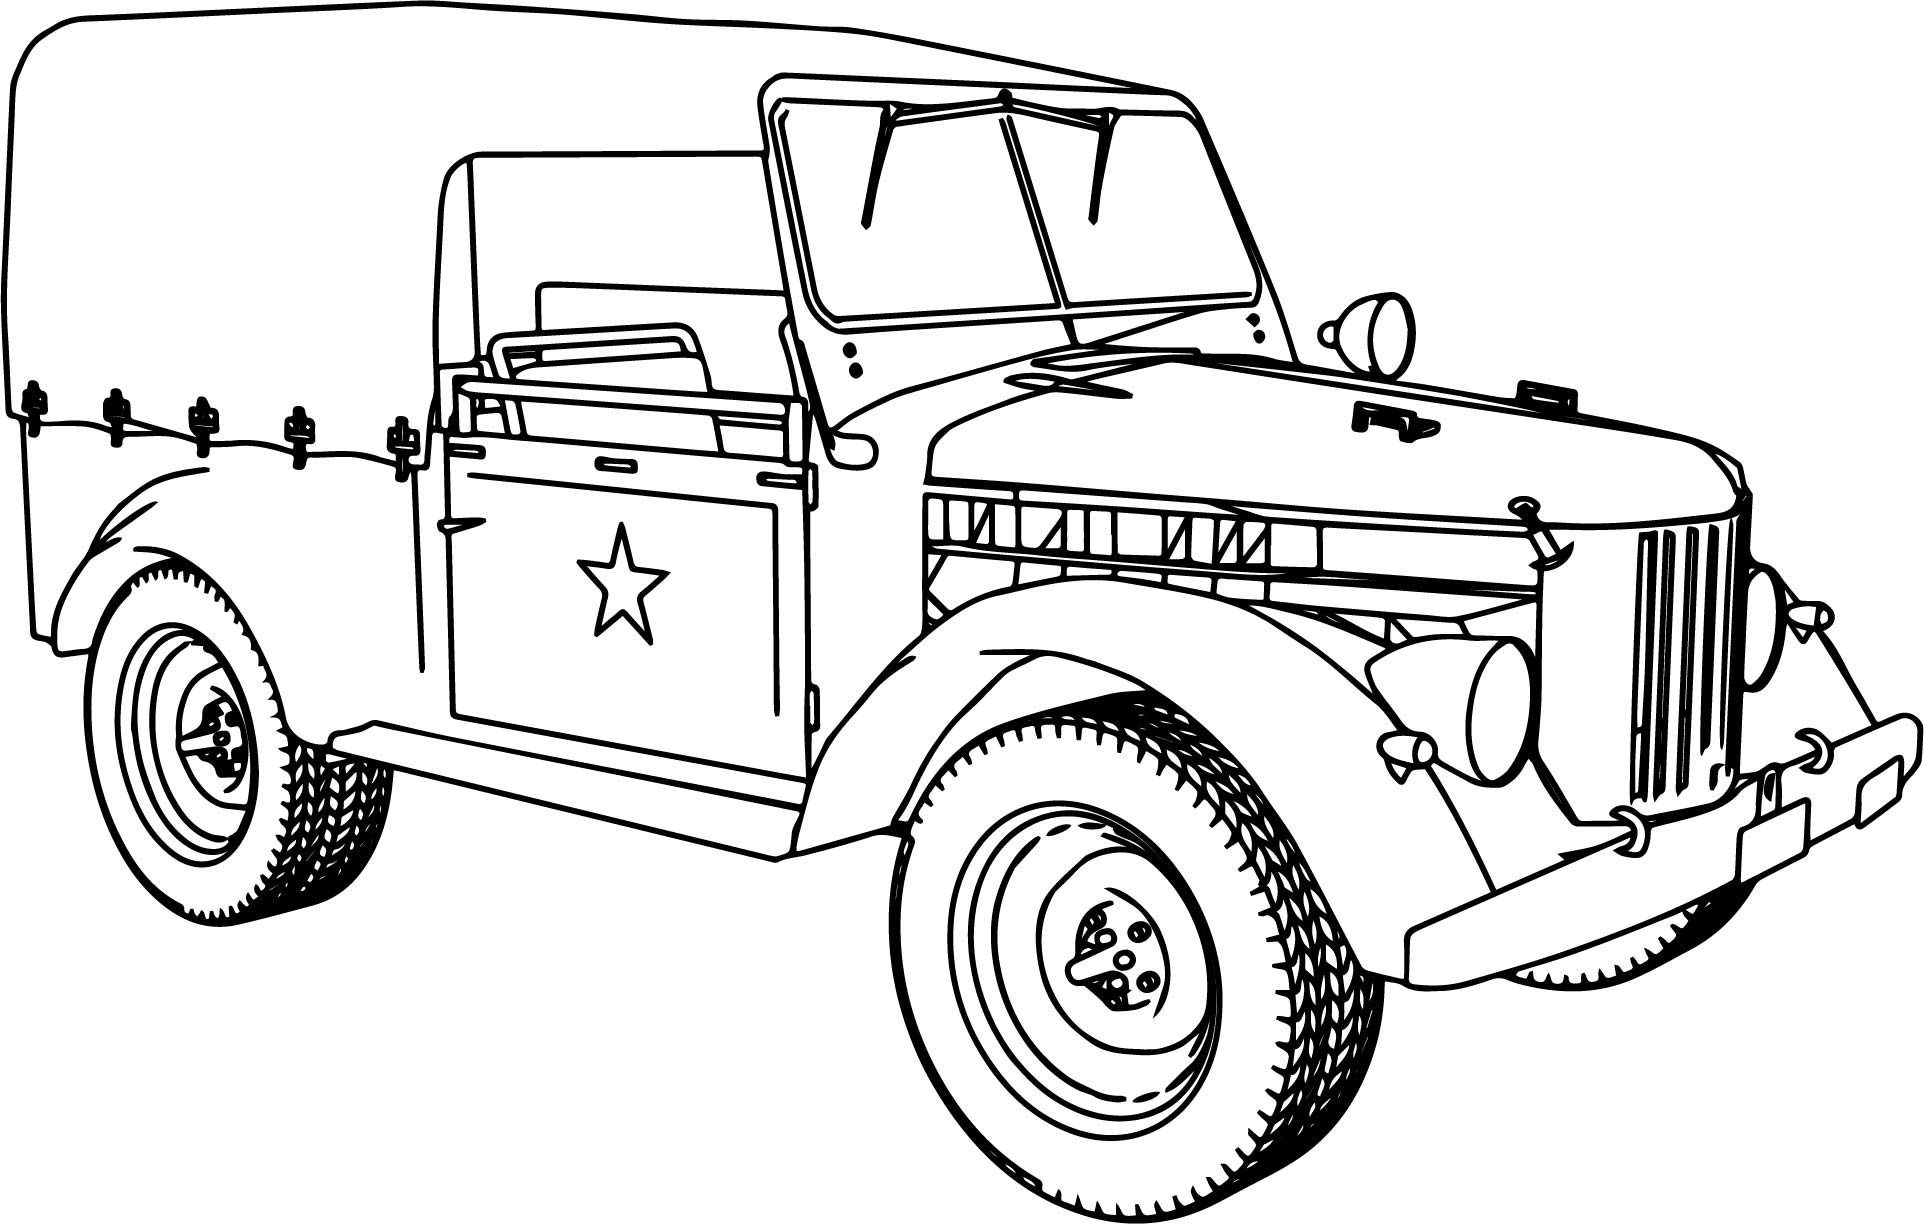 military vehicle pages coloring pages. Black Bedroom Furniture Sets. Home Design Ideas